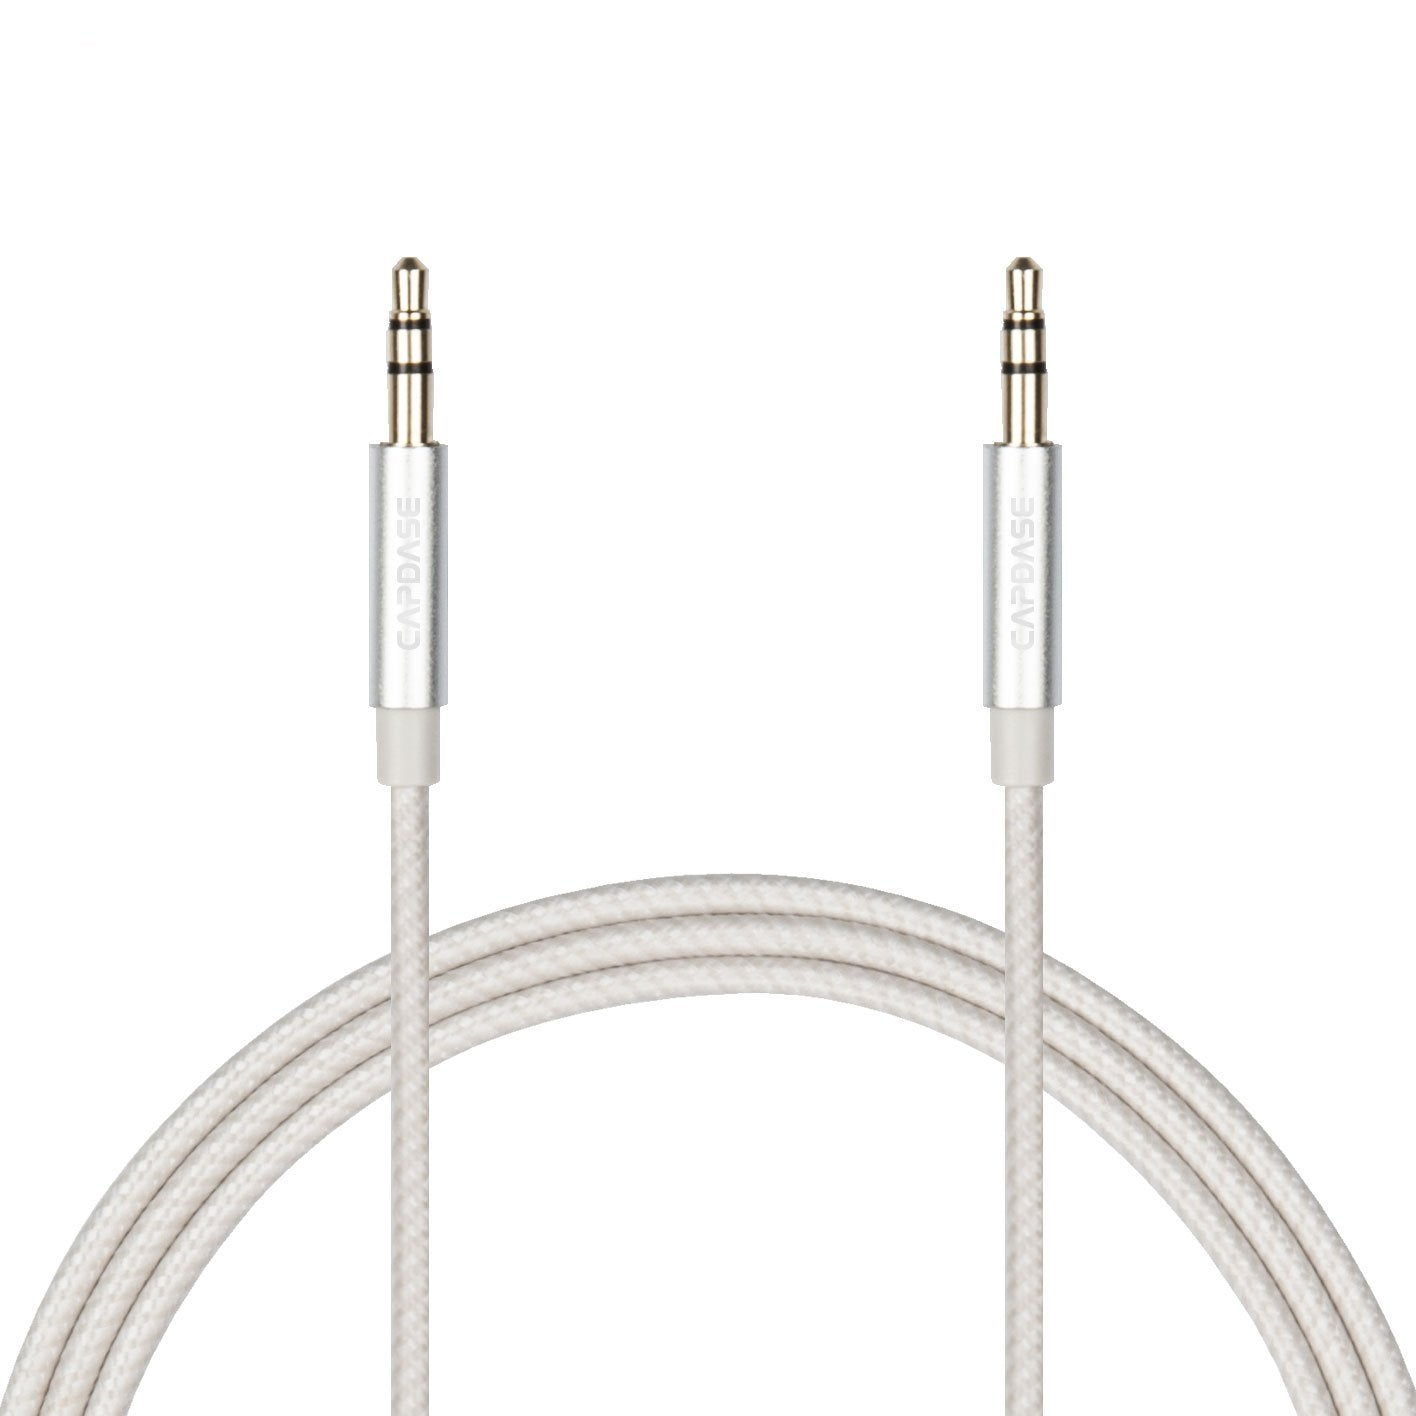 METALLIC Auxiliary Audio 3.5mm Jack Cable